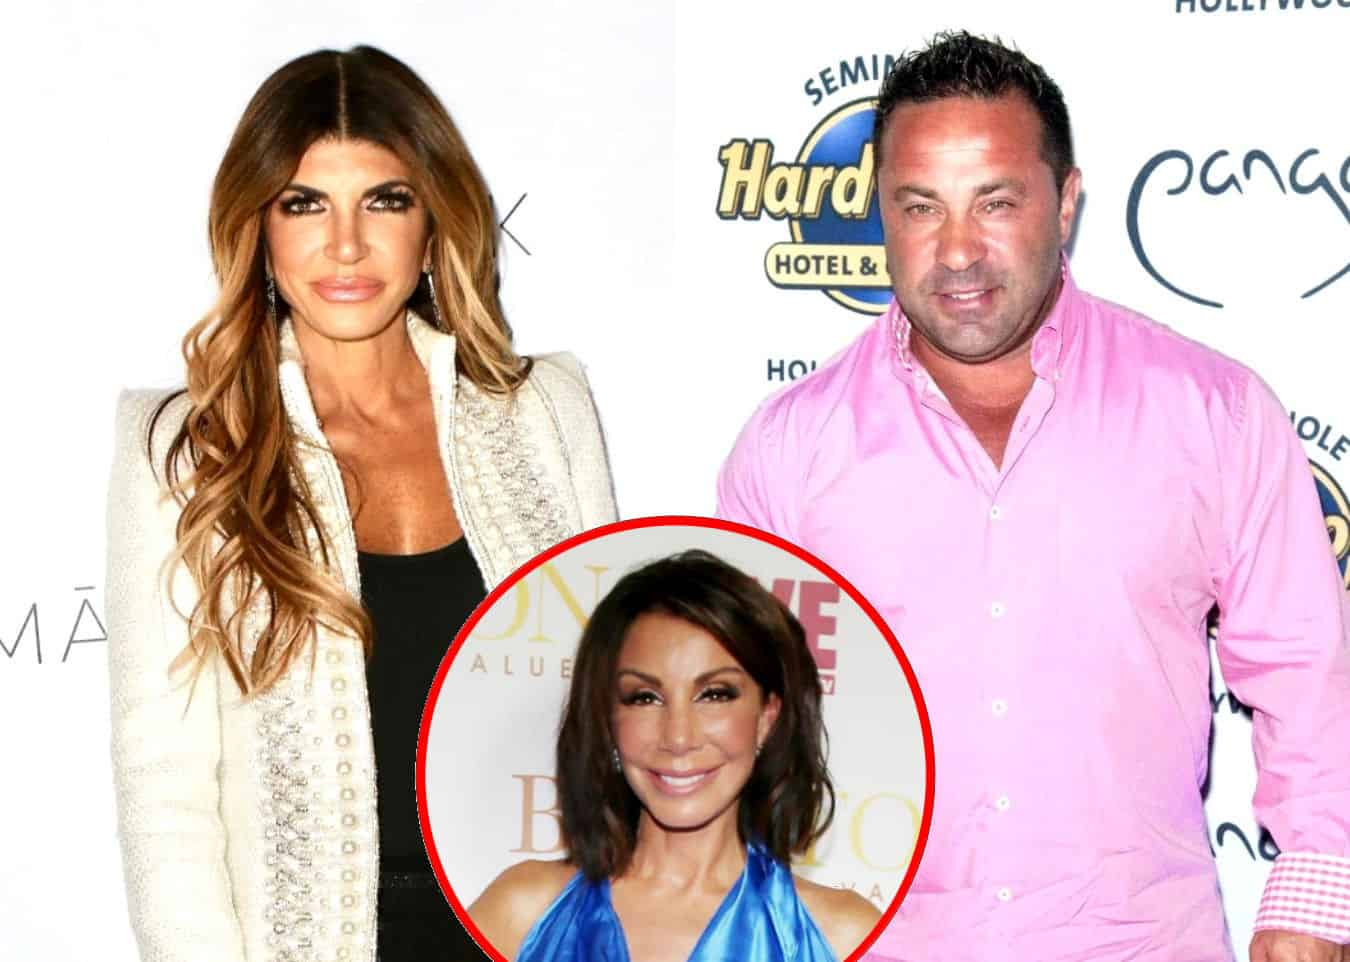 VIDEO: RHONJ's Teresa Giudice Tells Joe Giudice She Doesn't Want to Sleep With Him in Italy, Plus See Teresa End Her Friendship With Danielle Staub as Danielle Begs Her Not To